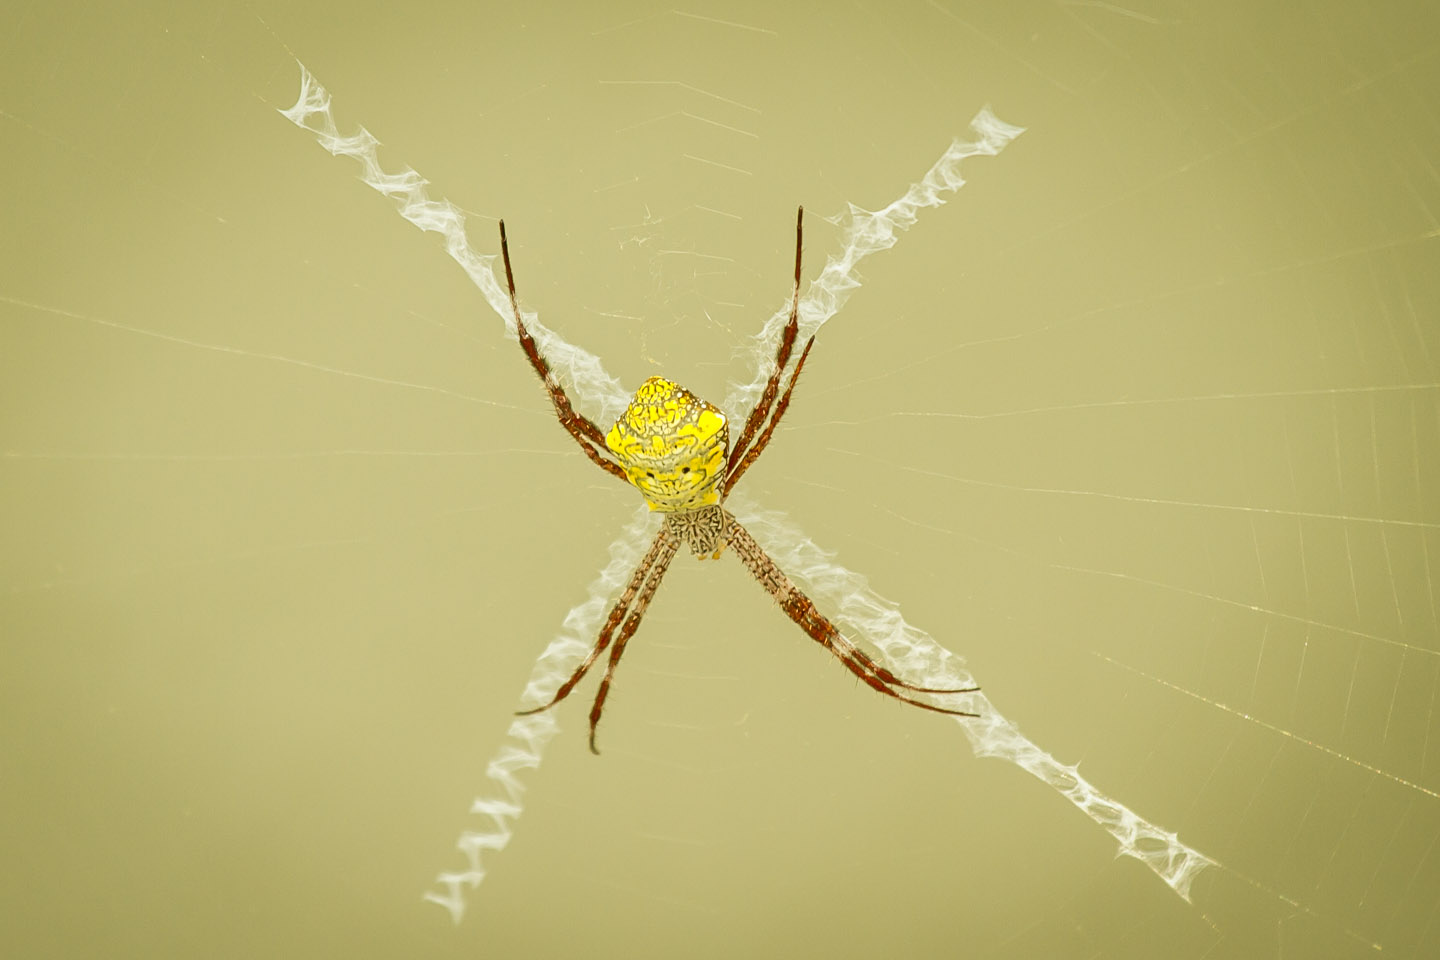 Huge yellow spider at Candi Sewu Hindu Buddhist Temple Java